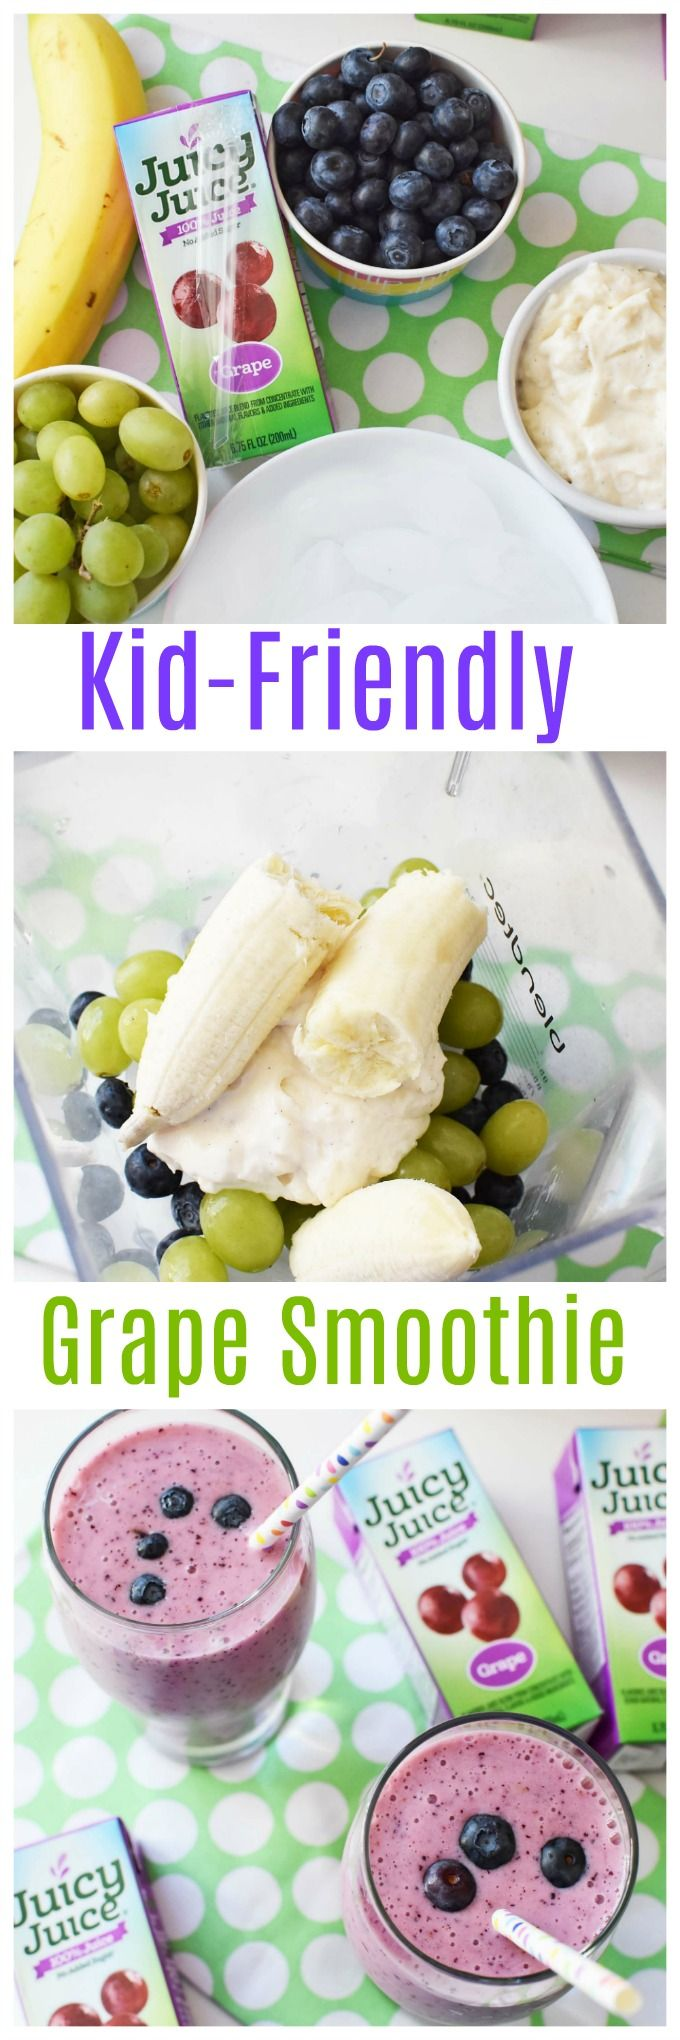 Best 151 Kid Friendly Grub Ideas On Pinterest Healthy Eating Wrp The Go Strawberry Low Fat 200 Ml Fruit Pizza Pancakes A Yummy Grape Smoothie